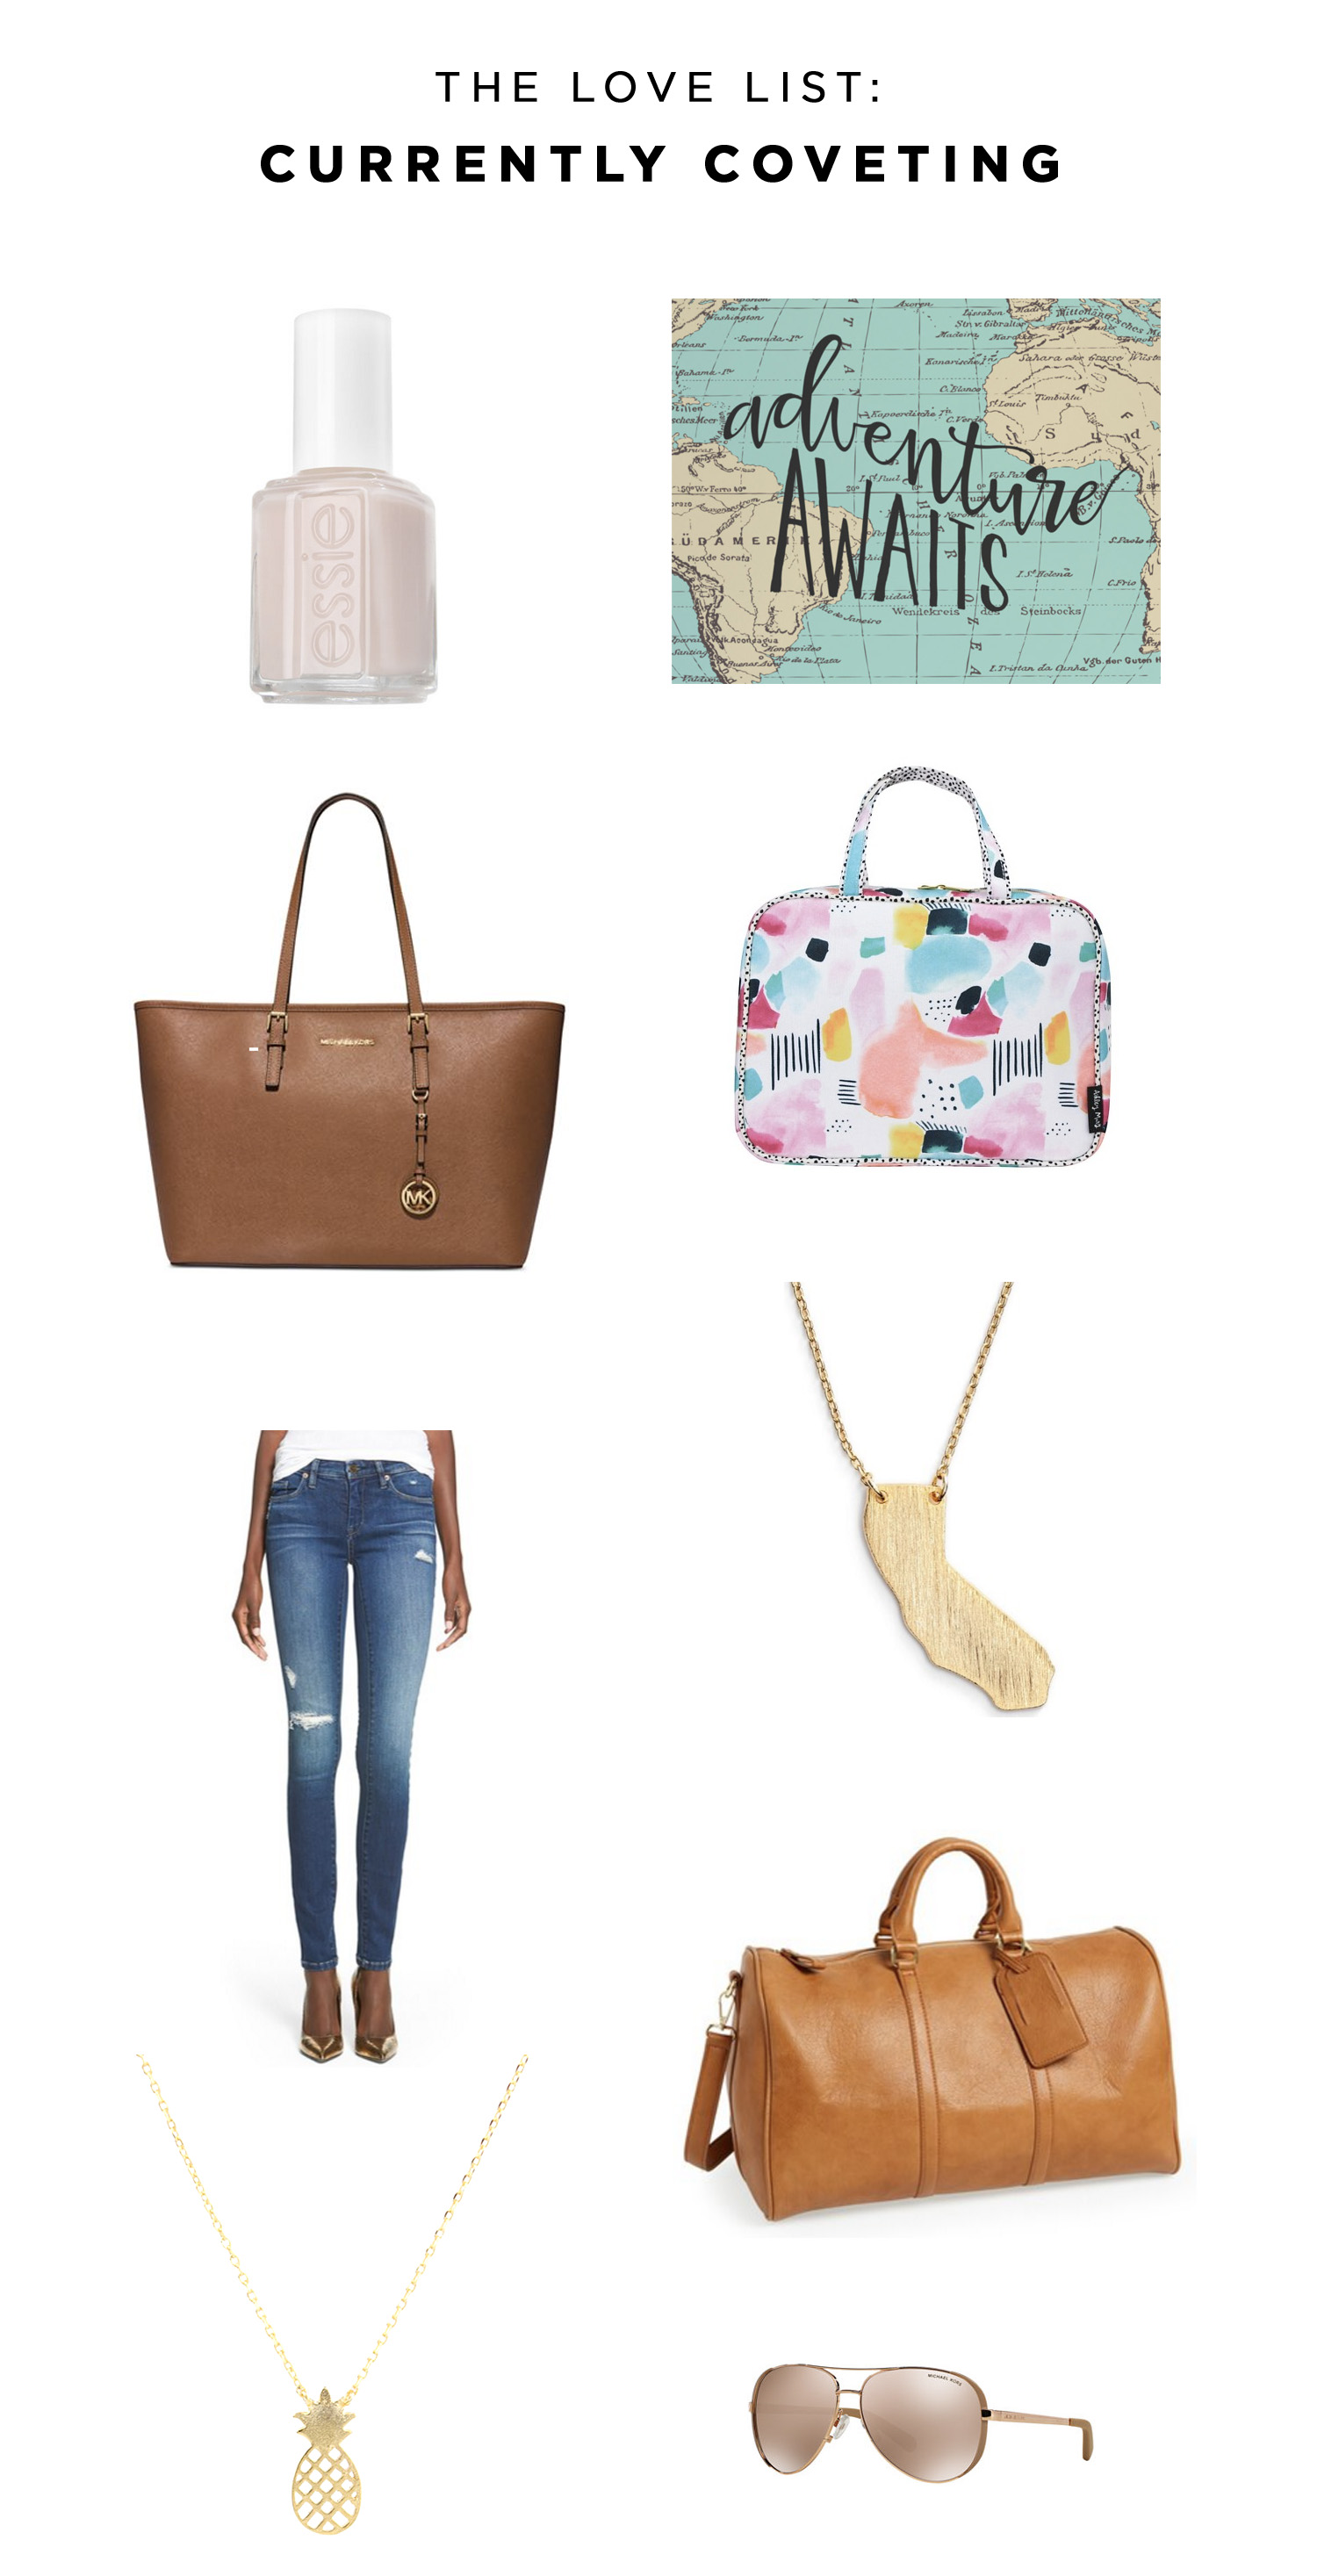 The Love List: Currently Coveting | Amy Tangerine